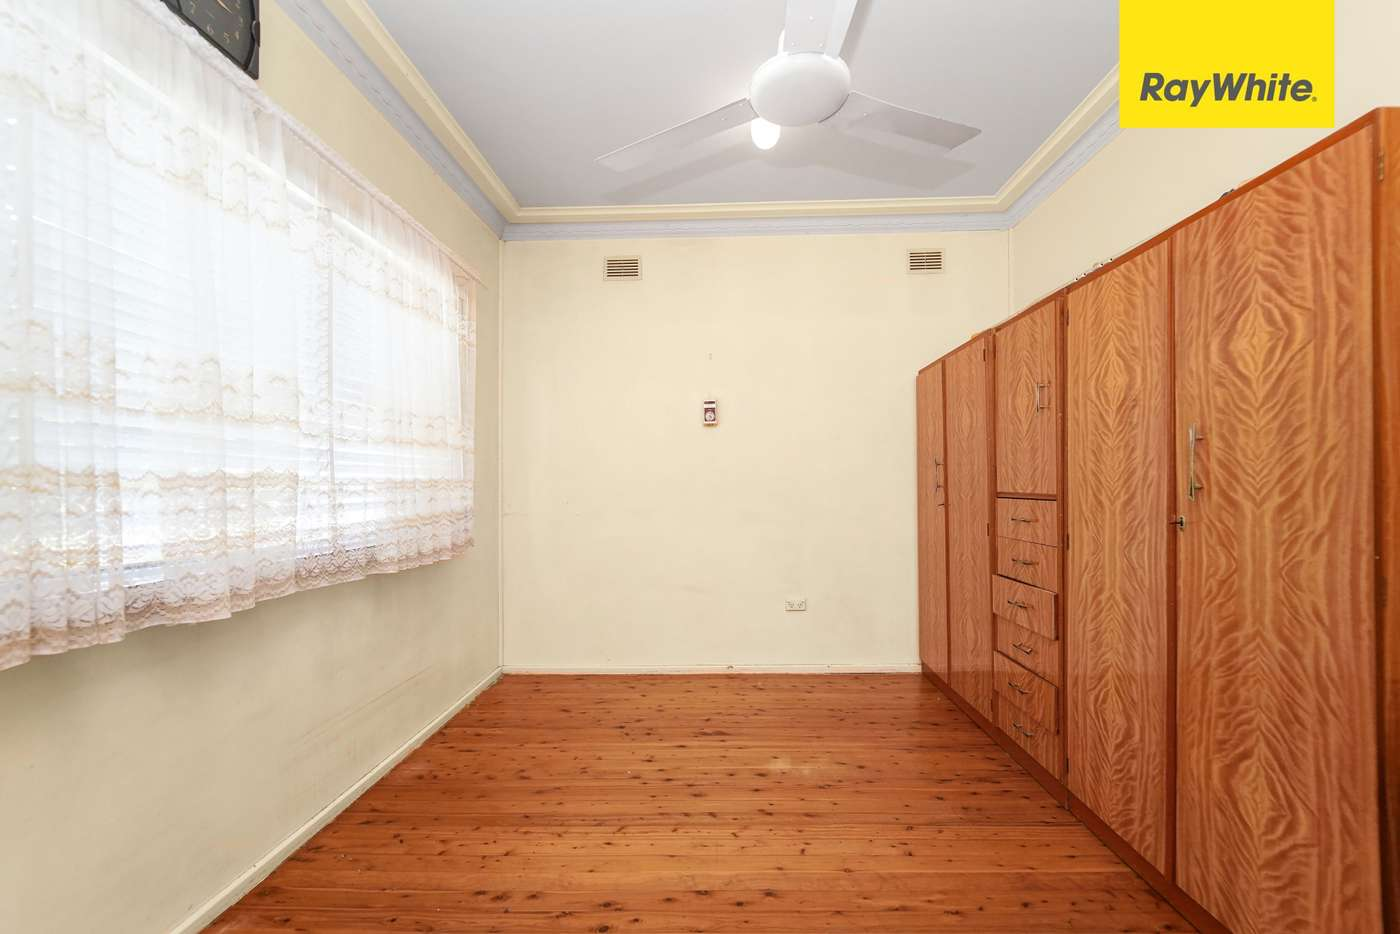 Sixth view of Homely house listing, 38 George Street, Mount Druitt NSW 2770